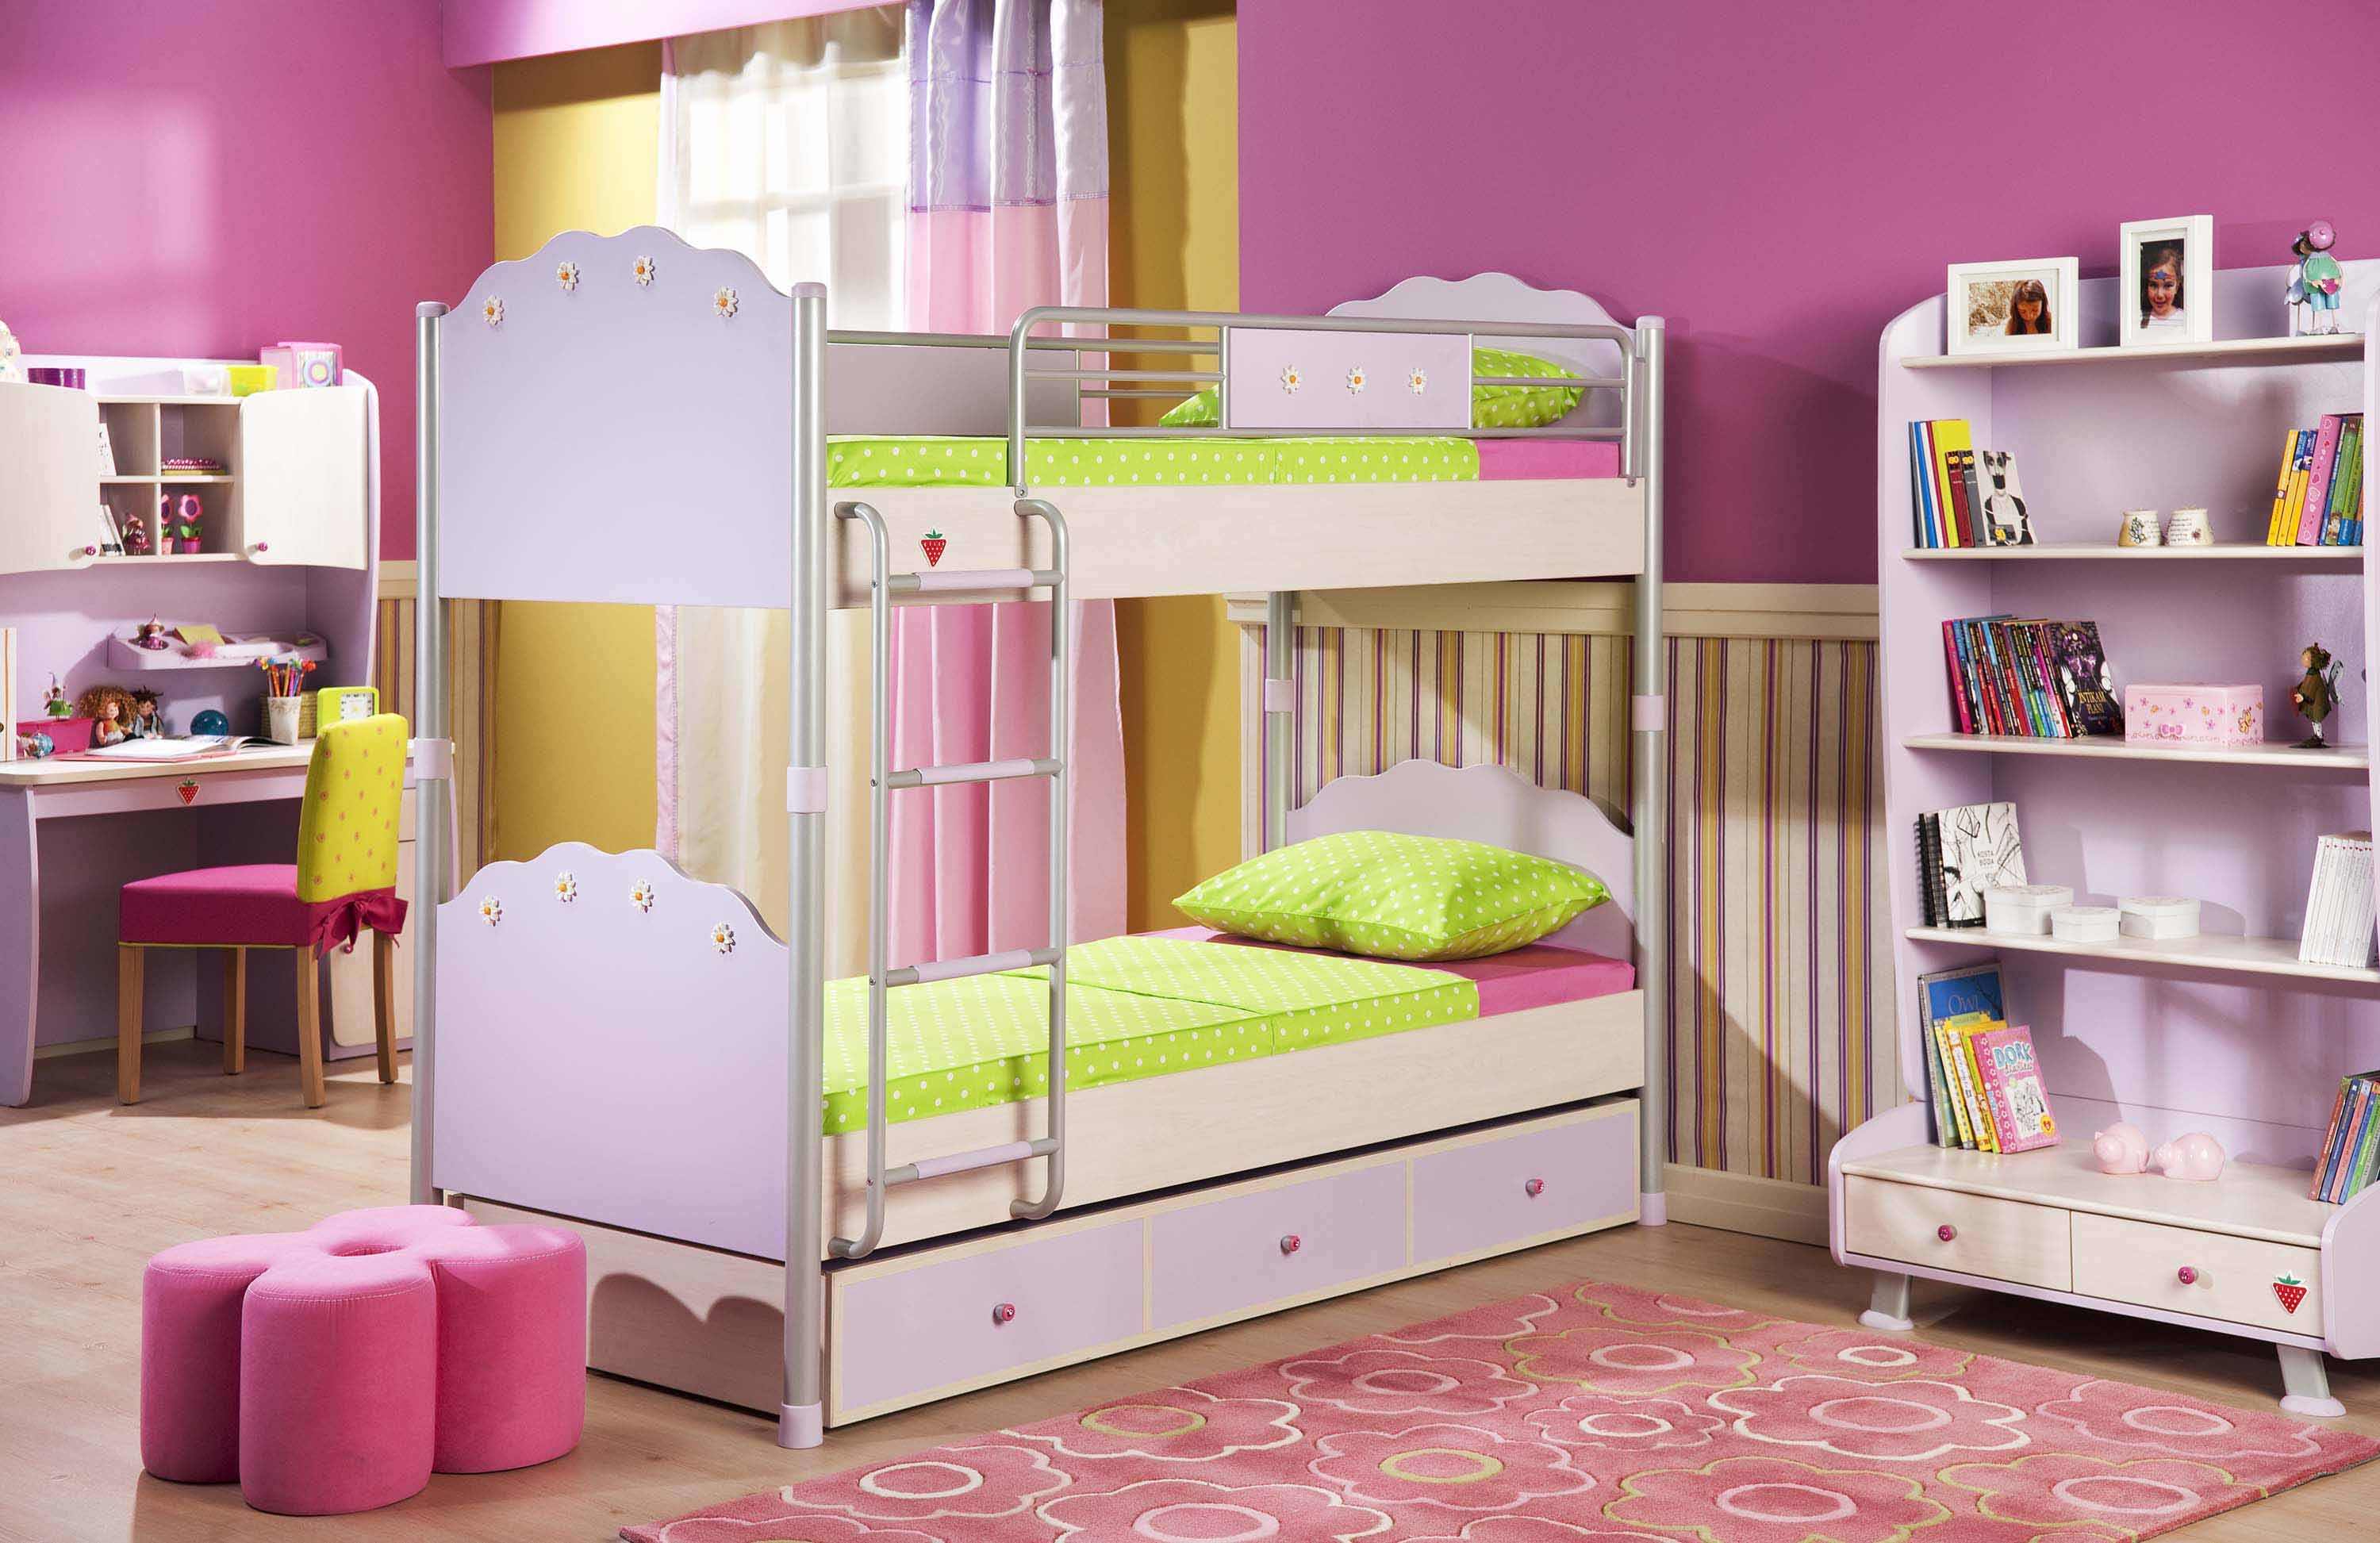 Kids Room Best Purple Bedroom Theme With Cool Furniture Set With Regard To Purple Curtains For Kids Room (Image 16 of 25)